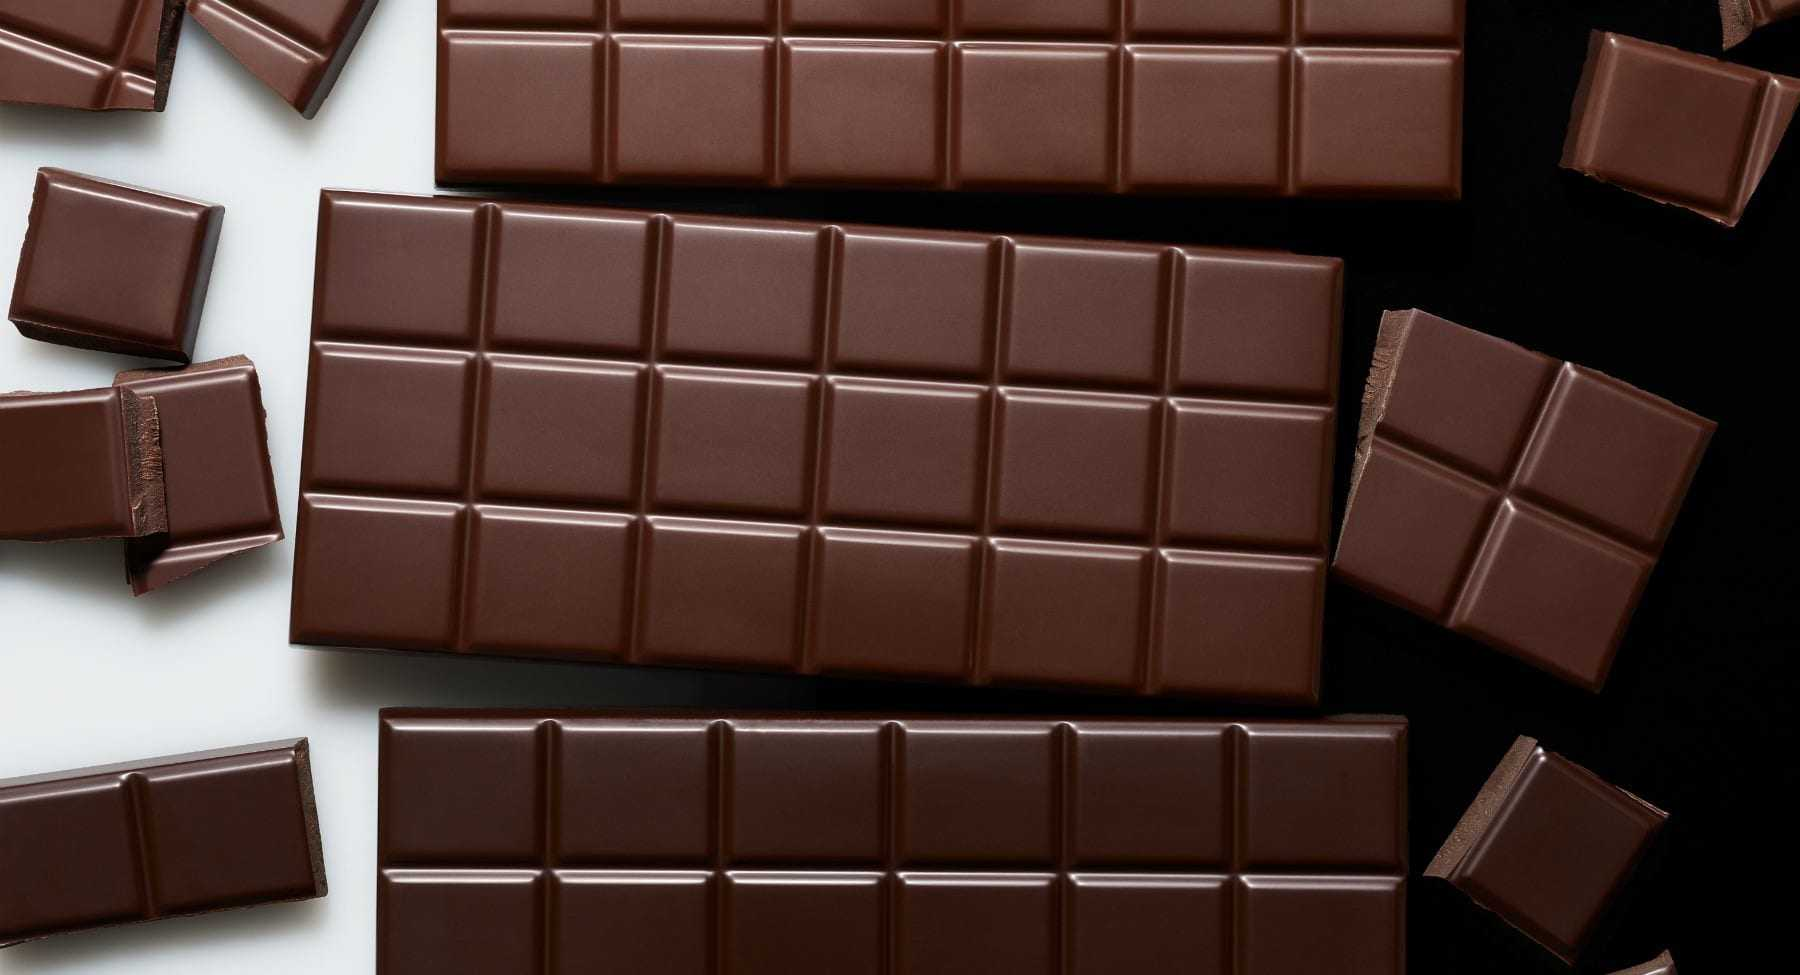 dark-chocolate-with-extra-virgin-olive-oil-improves-cardiovascular-risk-profile